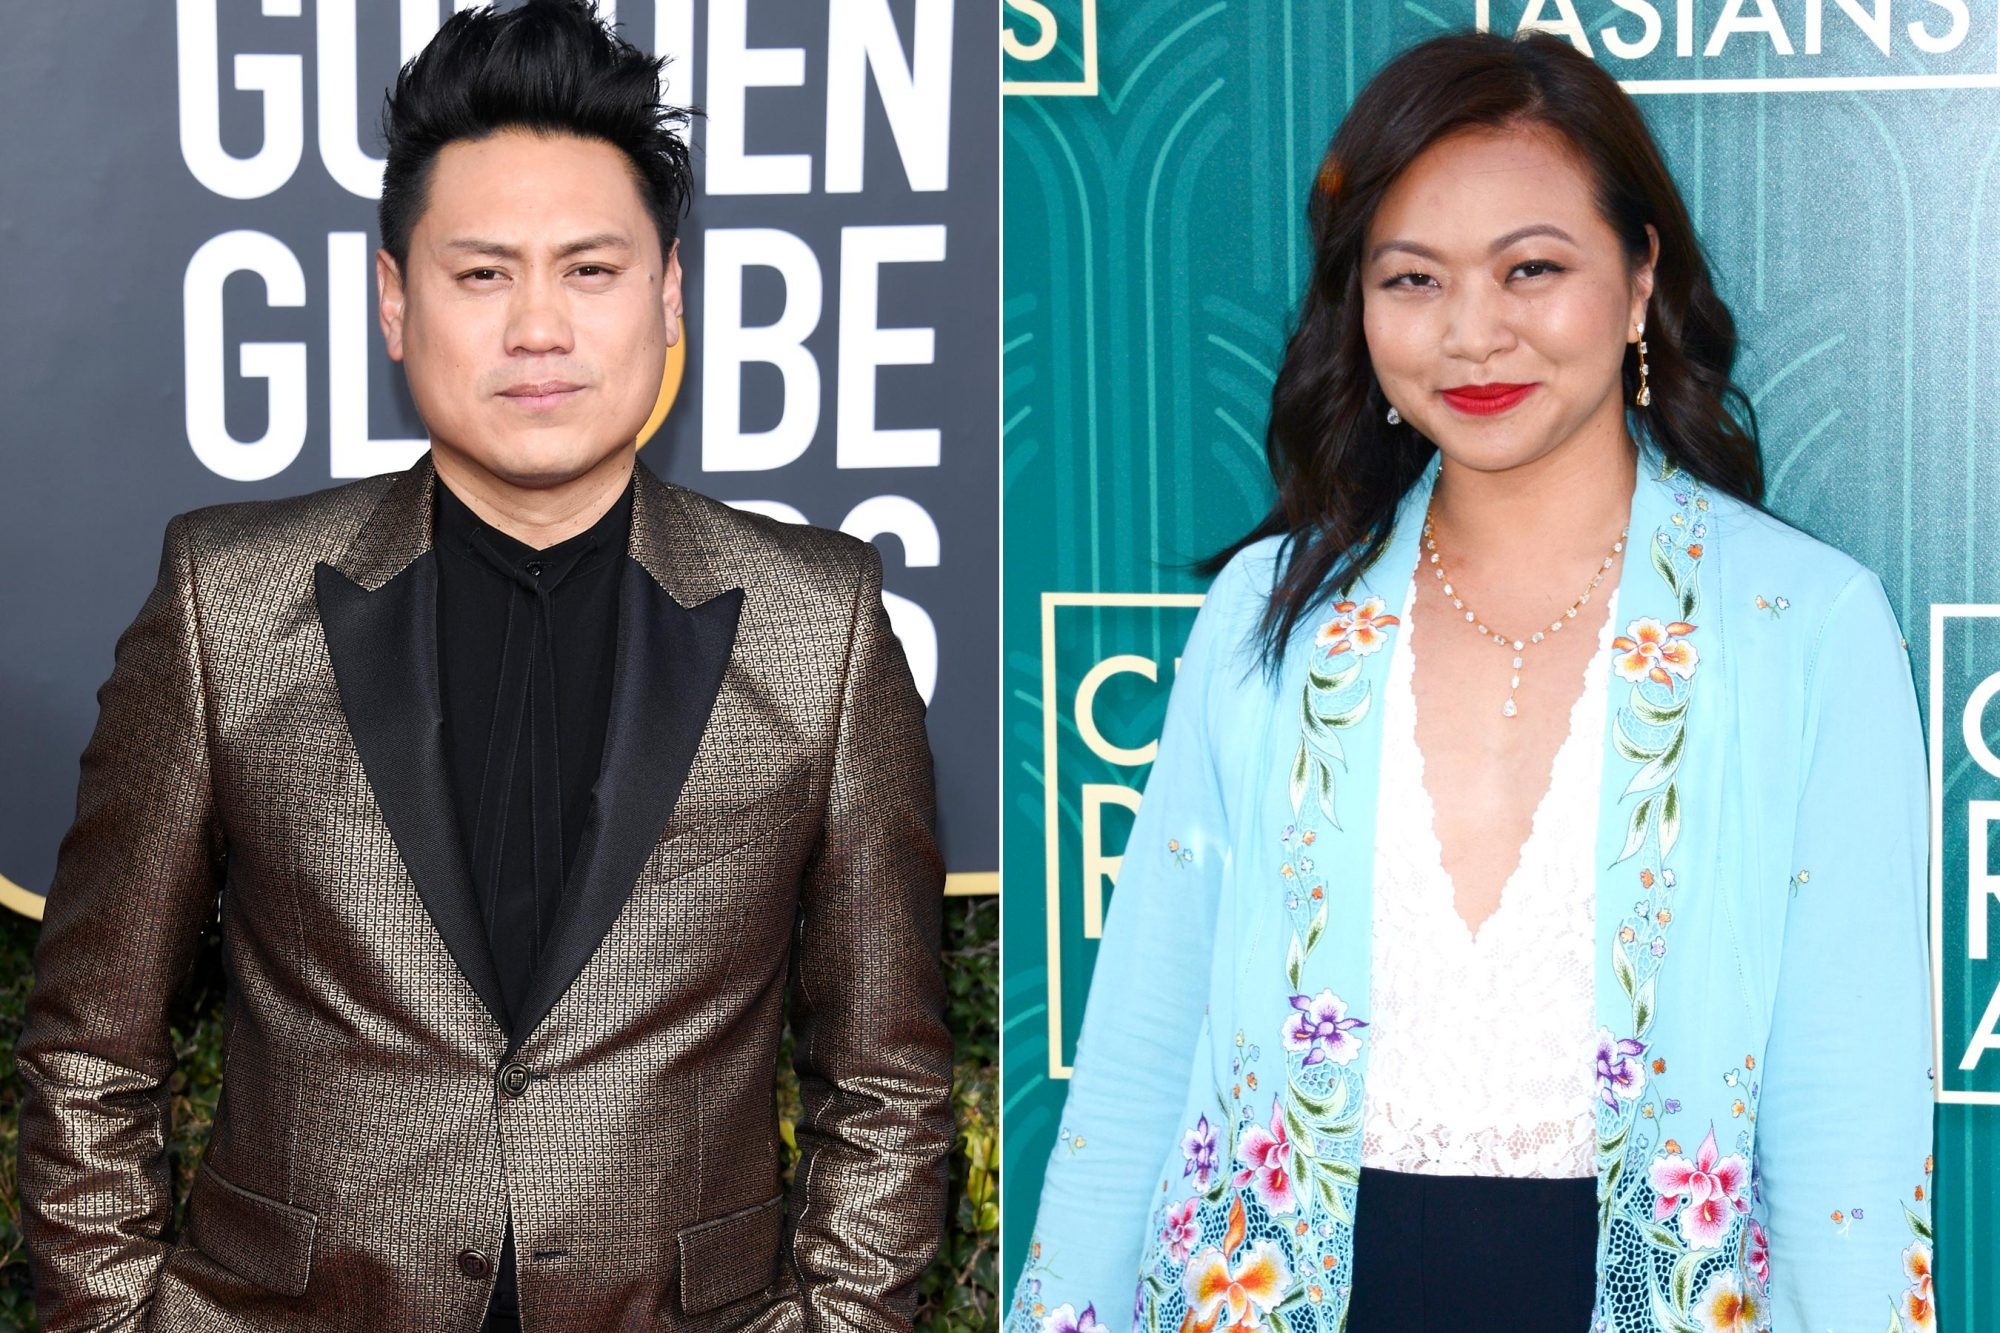 "BEVERLY HILLS, CA - JANUARY 06: Jon M. Chu attends the 76th Annual Golden Globe Awards at The Beverly Hilton Hotel on January 6, 2019 in Beverly Hills, California. (Photo by Daniele Venturelli/WireImage) HOLLYWOOD, CA - AUGUST 07: Writer Adele Lim arrives for Warner Bros. Pictures' ""Crazy Rich Asians"" Premiere held at TCL Chinese Theatre IMAX on August 7, 2018 in Hollywood, California. (Photo by Albert L. Ortega/Getty Images)"